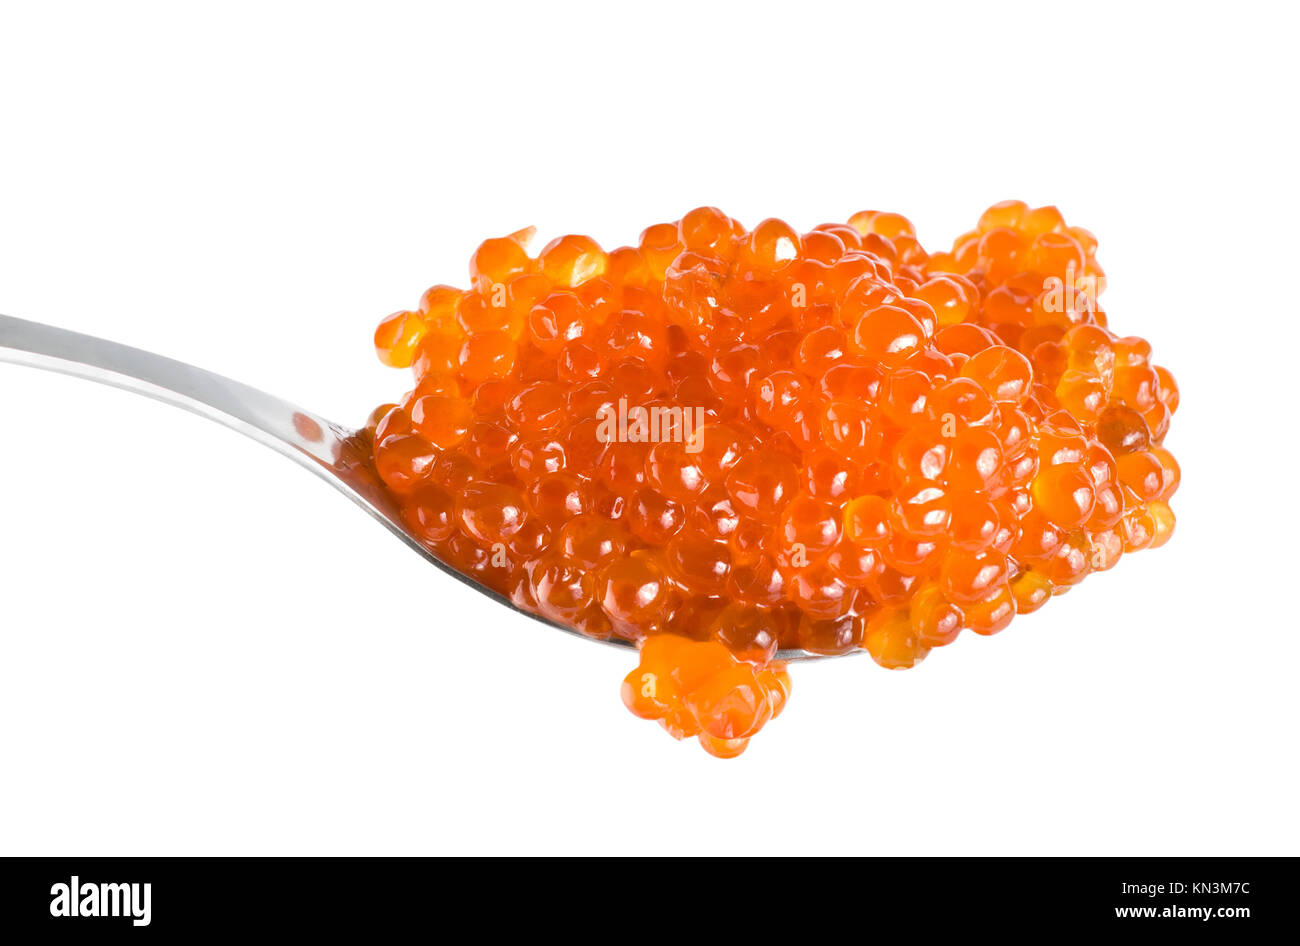 Large red caviar in spoon isolated on white background. - Stock Image